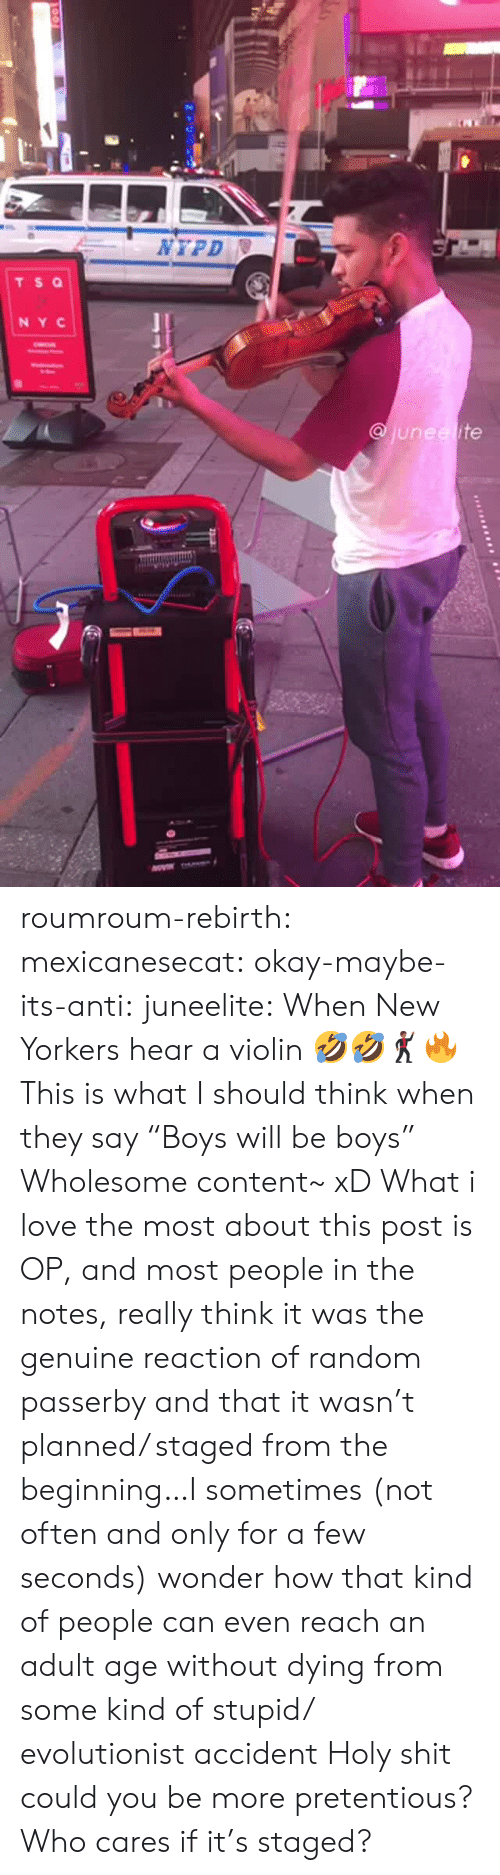 """Love, Pretentious, and Shit: NYPD  TS Q  NY C  junee ite roumroum-rebirth:  mexicanesecat:  okay-maybe-its-anti:  juneelite: When New Yorkers hear a violin 🤣🤣🕺🏾🔥  This is what I should think when they say """"Boys will be boys""""  Wholesome content~ xD  What i love the most about this post is OP, and most people in the notes, really think it was the genuine reaction of random passerby and that it wasn't planned/ staged from the beginning…I sometimes (not often and only for a few seconds) wonder how that kind of people can even reach an adult age without dying from some kind of stupid/ evolutionist accident  Holy shit could you be more pretentious? Who cares if it's staged?"""